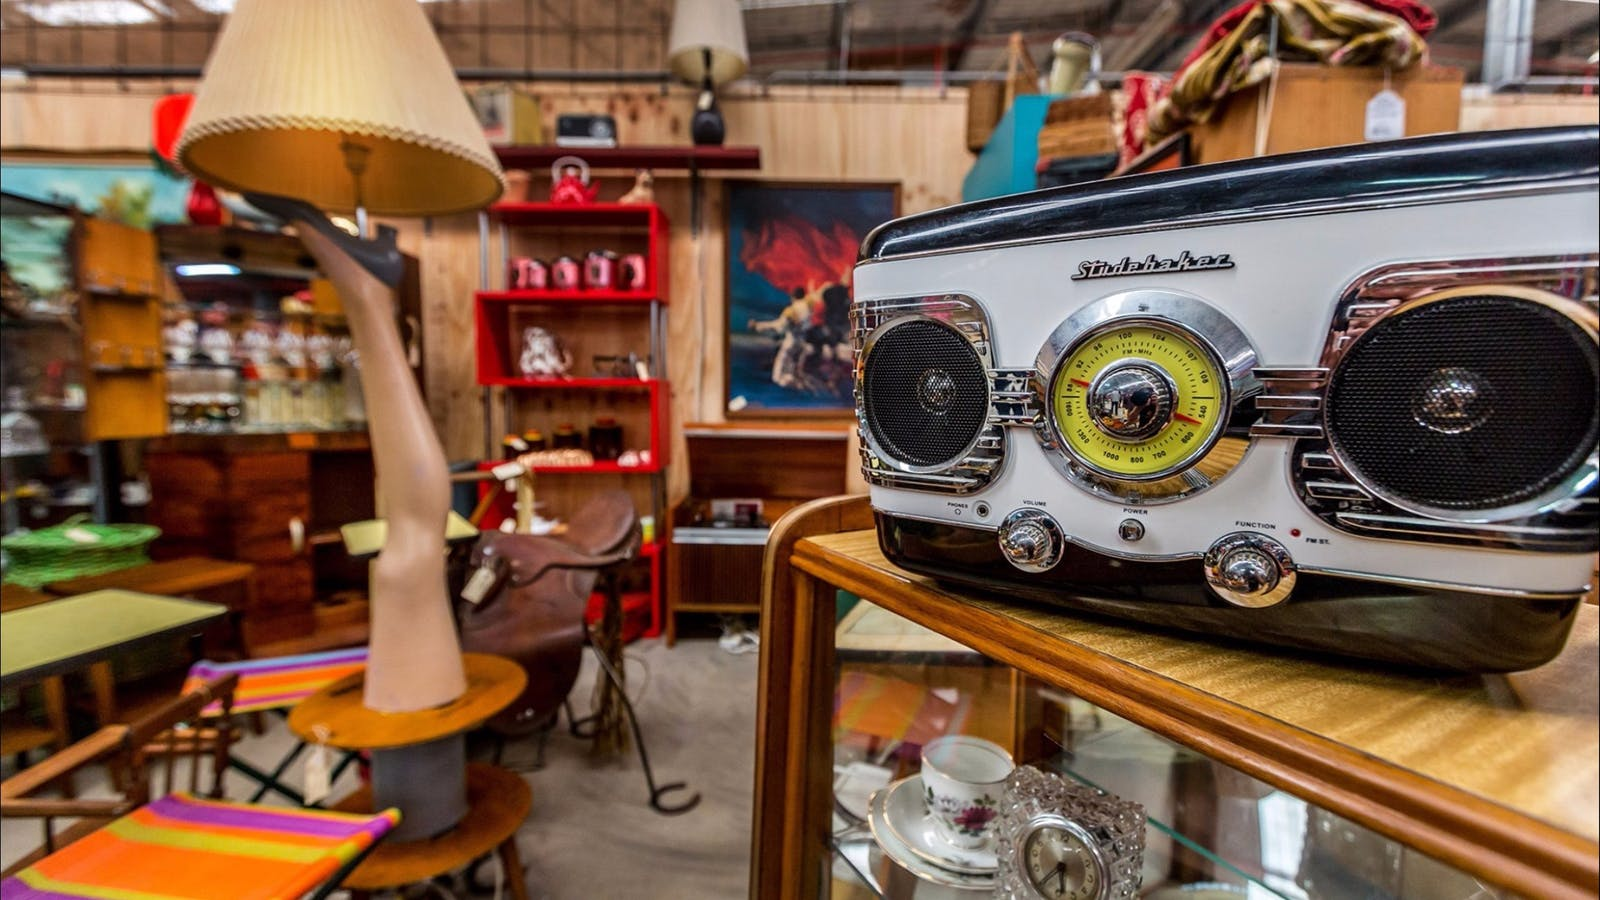 Find what you're not looking for at the Castlemaine Vintage Bazaar